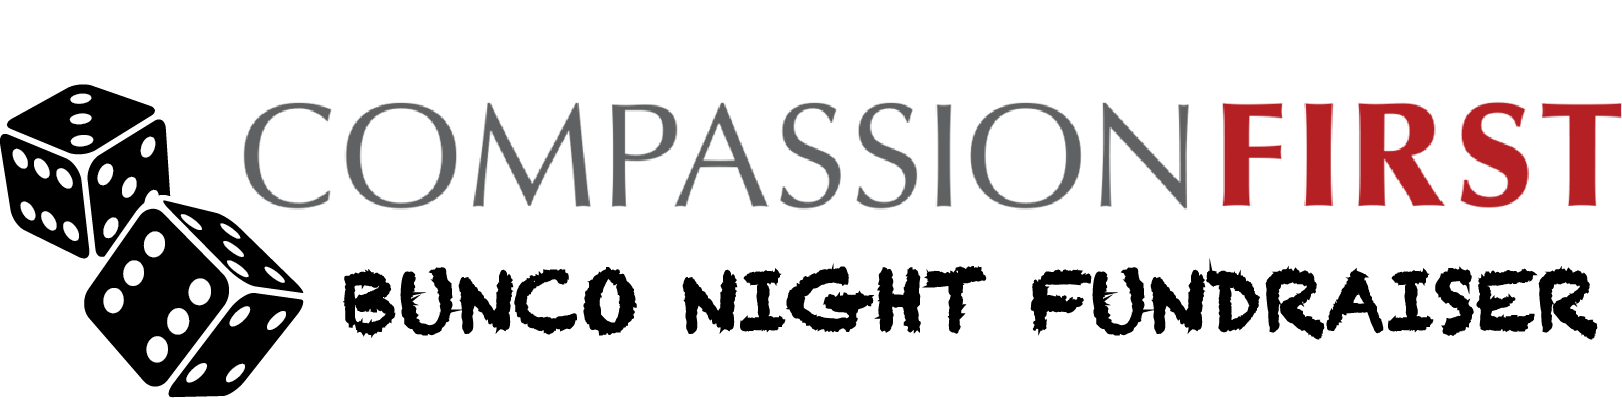 Compassion First Bunco Night Fundraise Logo.png